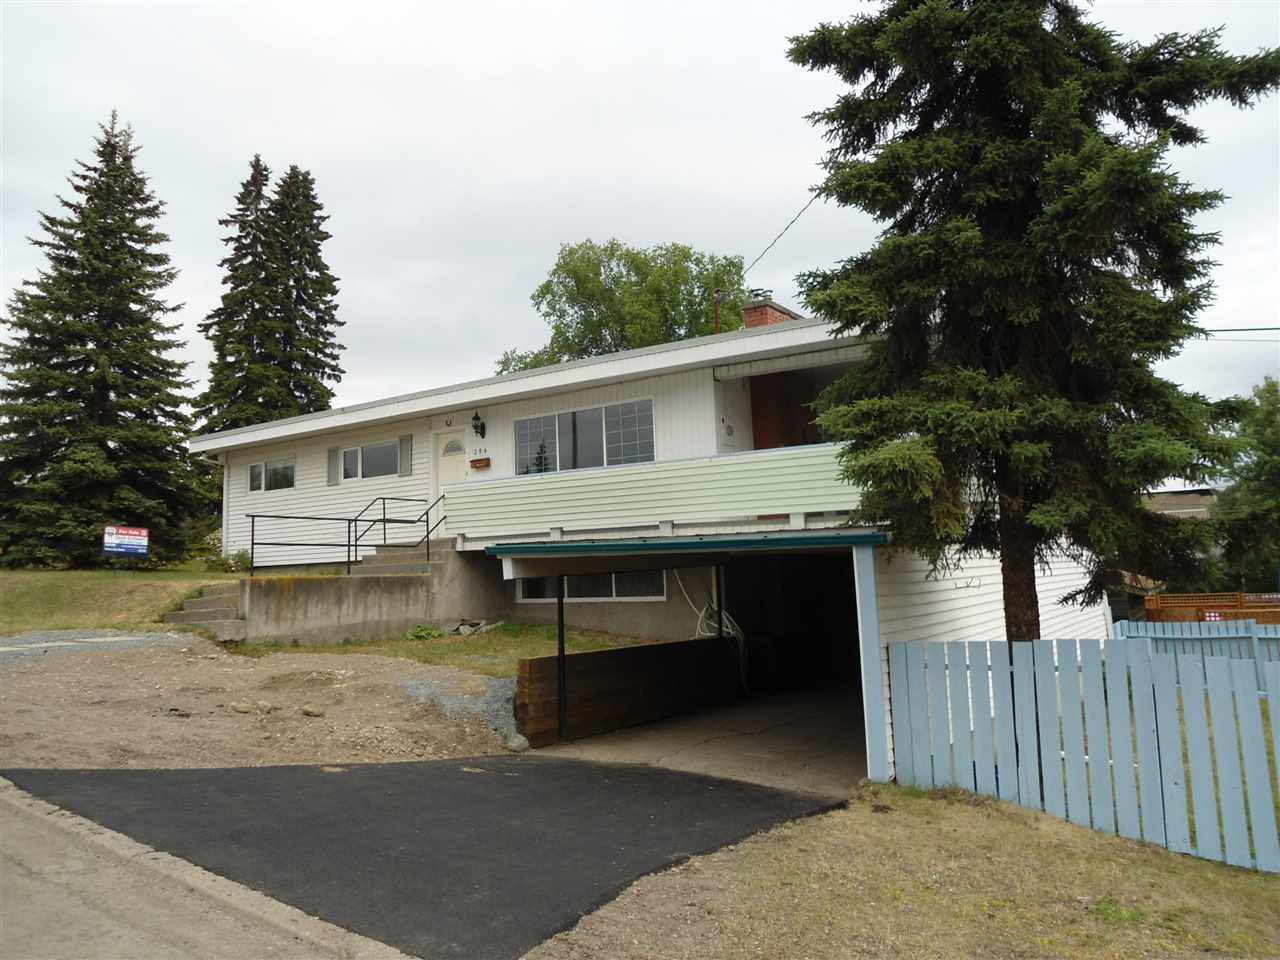 Main Photo: 206 N MOFFAT Street in Prince George: Quinson House for sale (PG City West (Zone 71))  : MLS®# R2378010